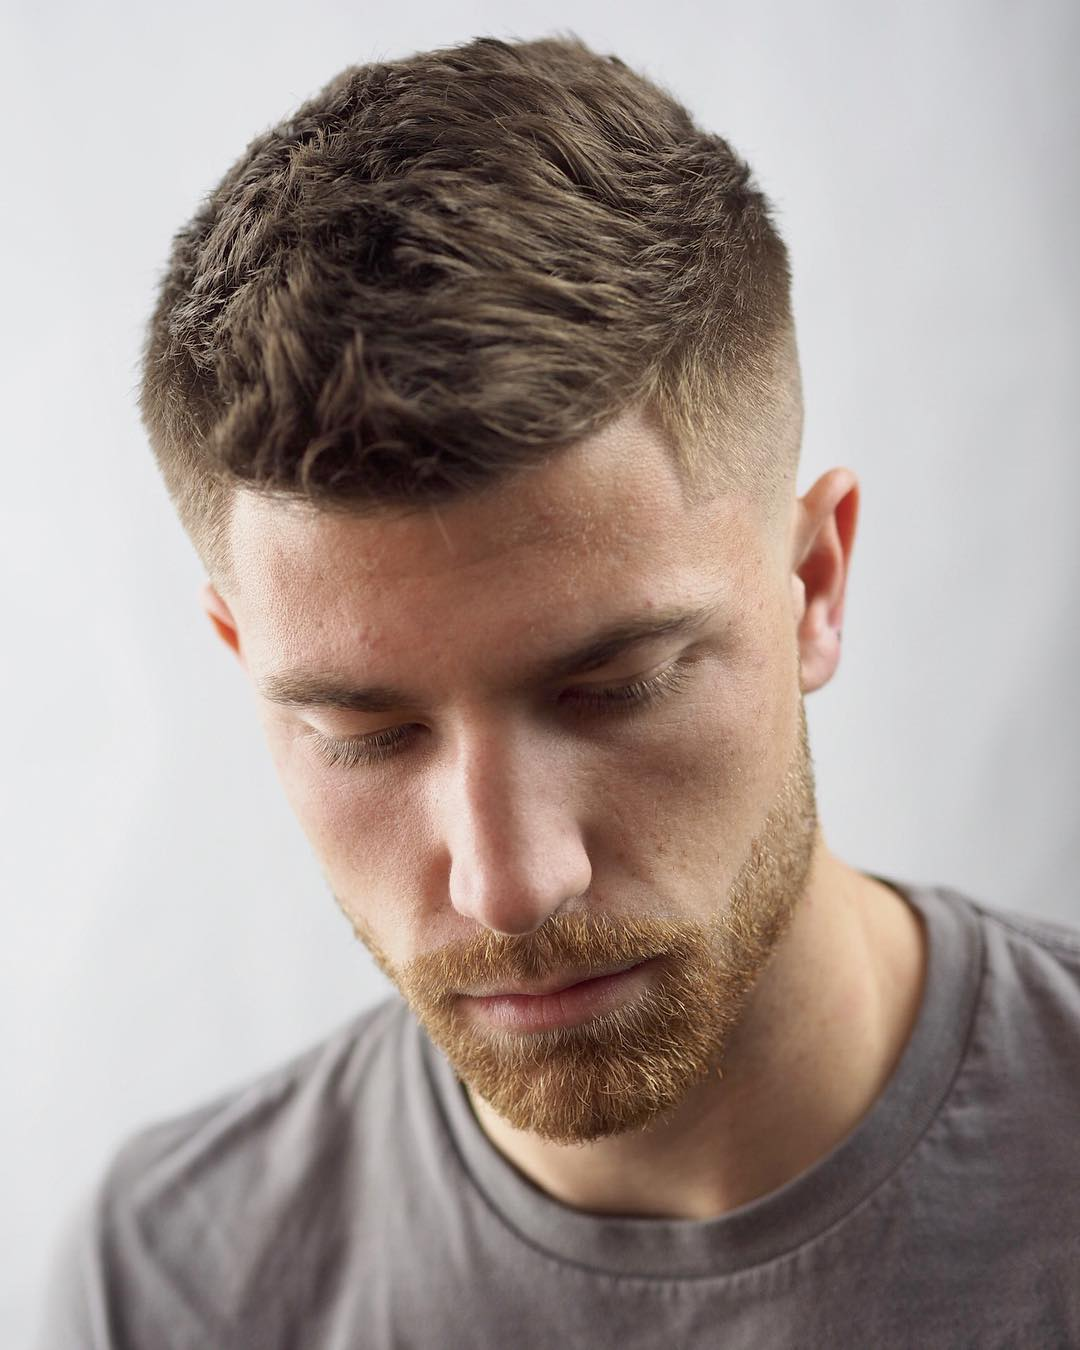 25+ Short Haircuts For Men -> Fresh Styles For September 2020